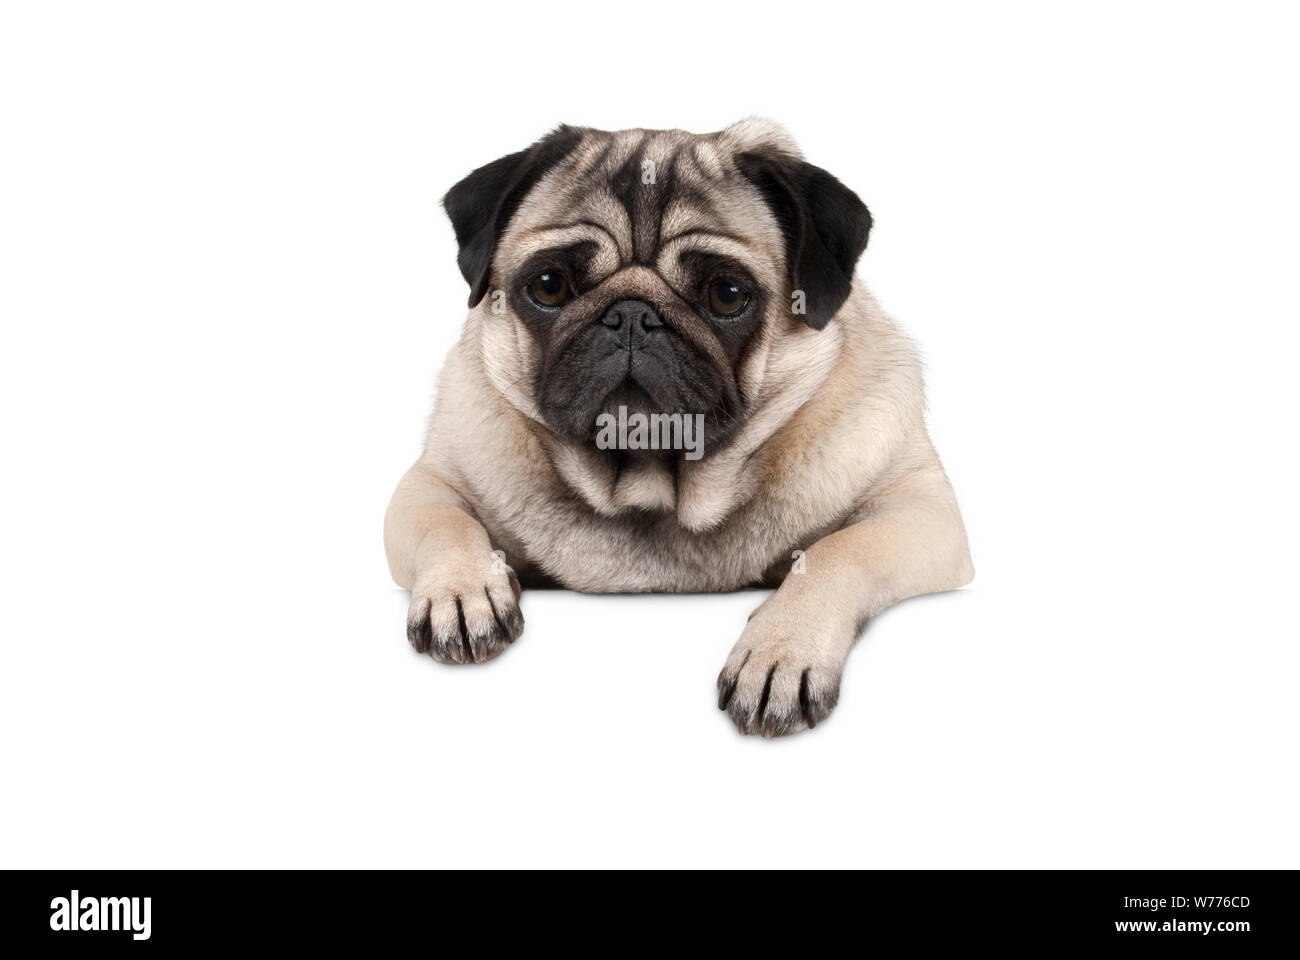 cute little pug puppy dog, looking watchful waiting, hanging with paws on white banner, isolated from background Stock Photo